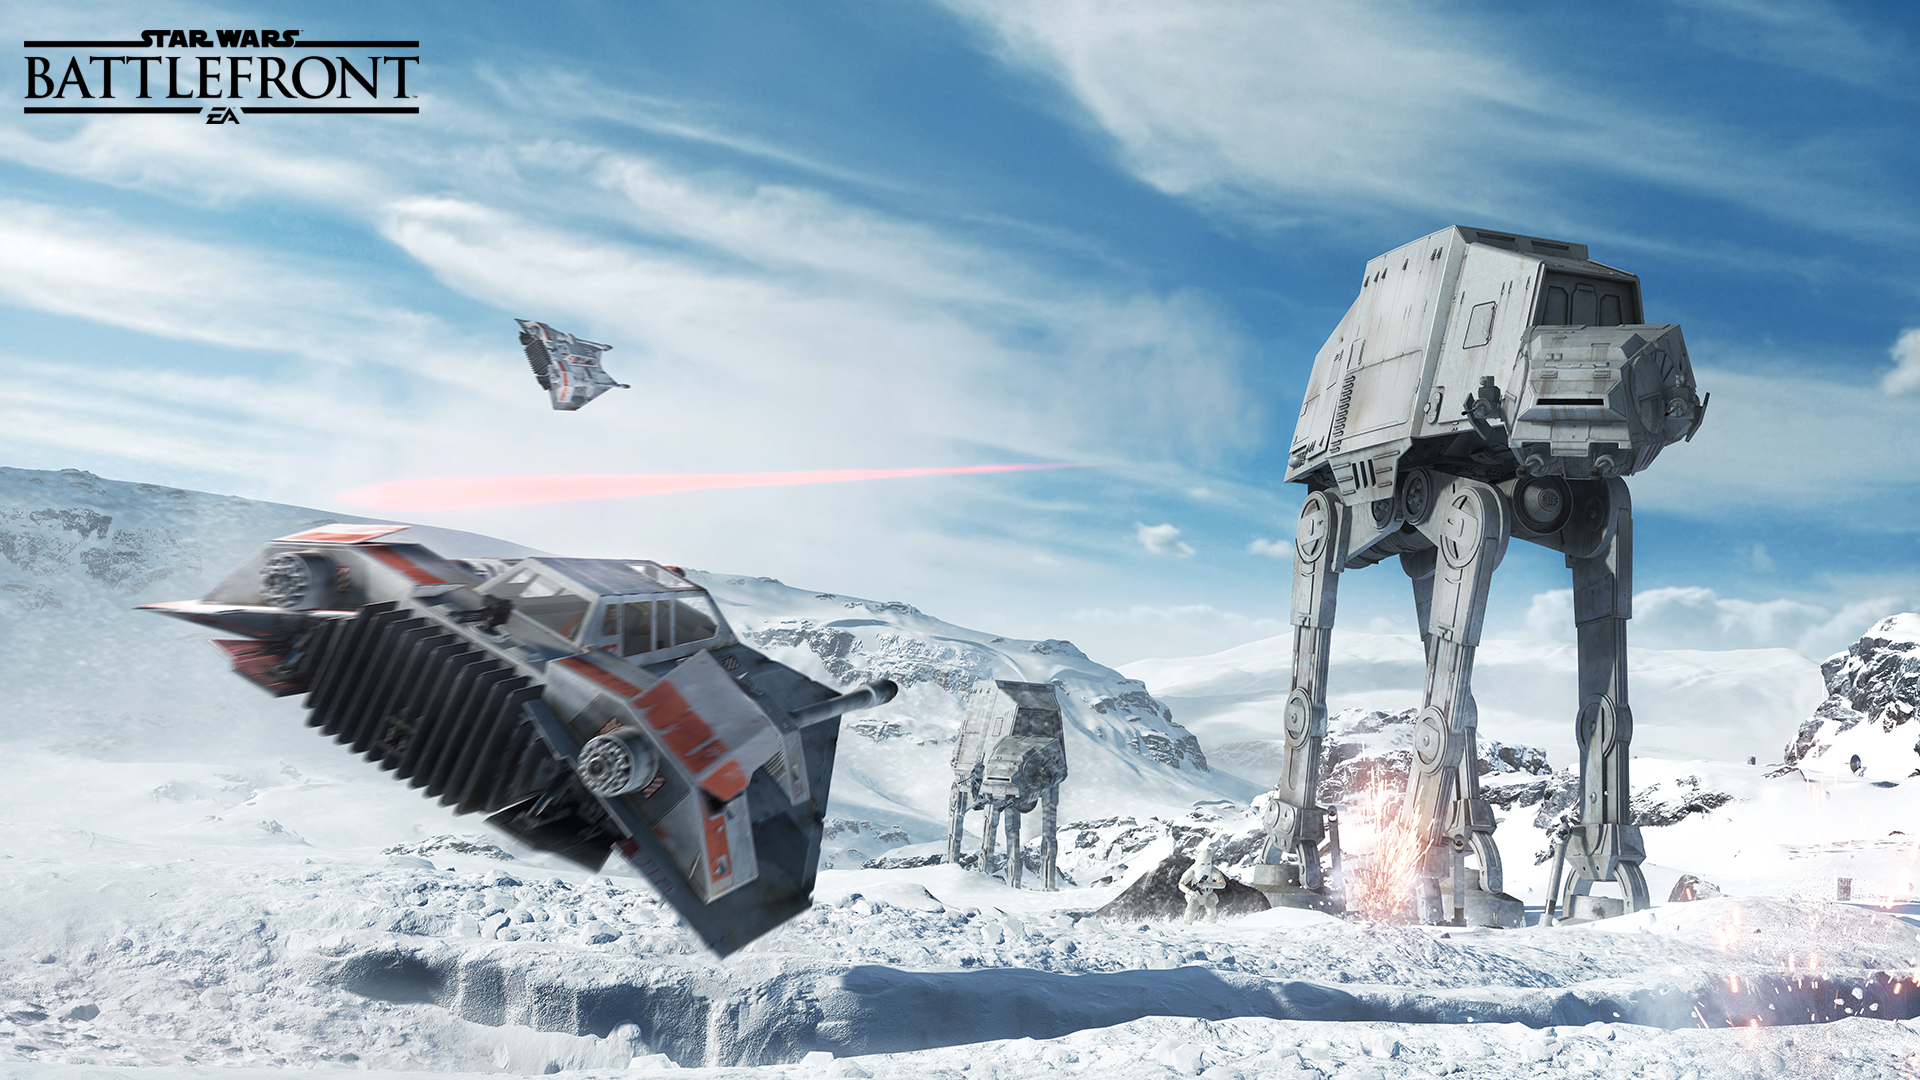 Star Wars Battlefront _4-17_A